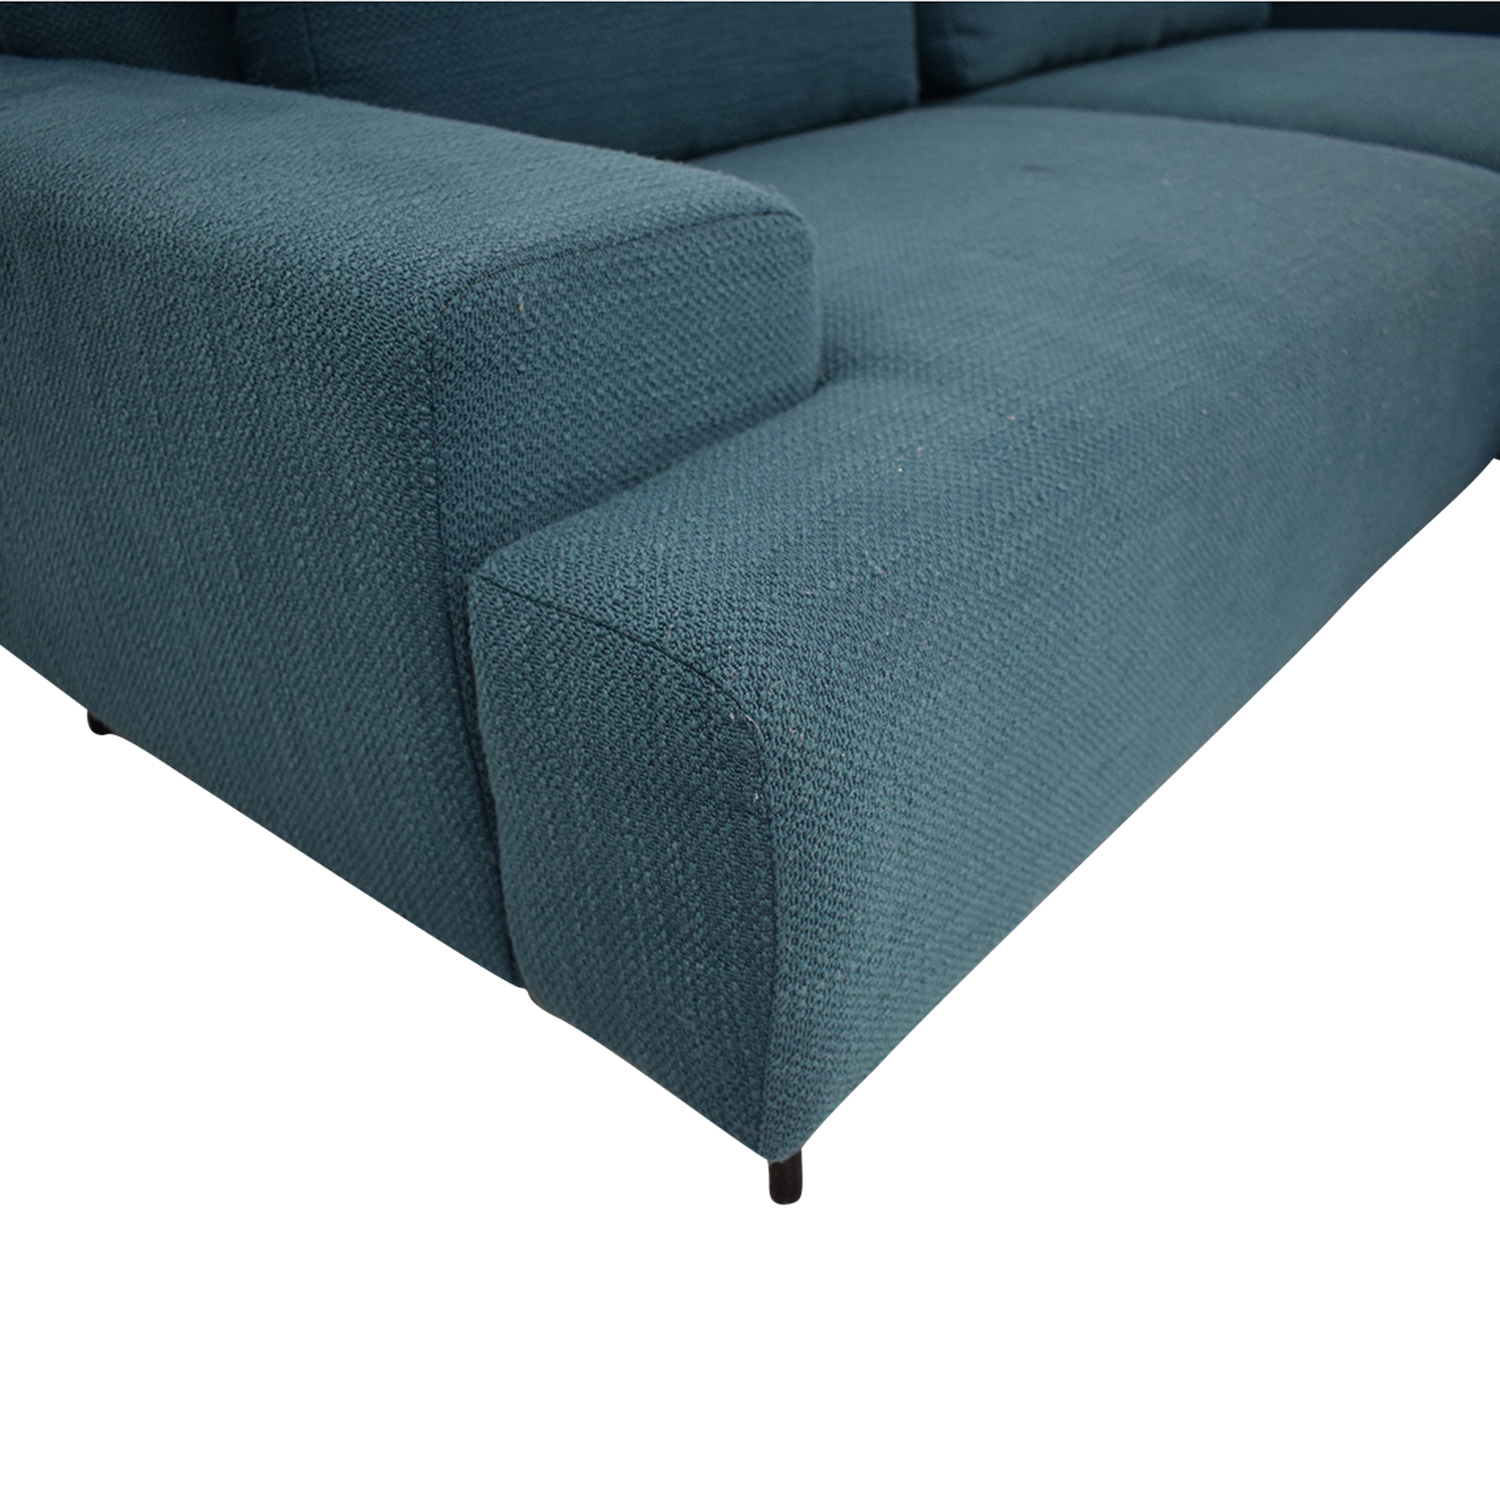 West Elm West Elm Two Piece Chaise Sectional Sofa coupon